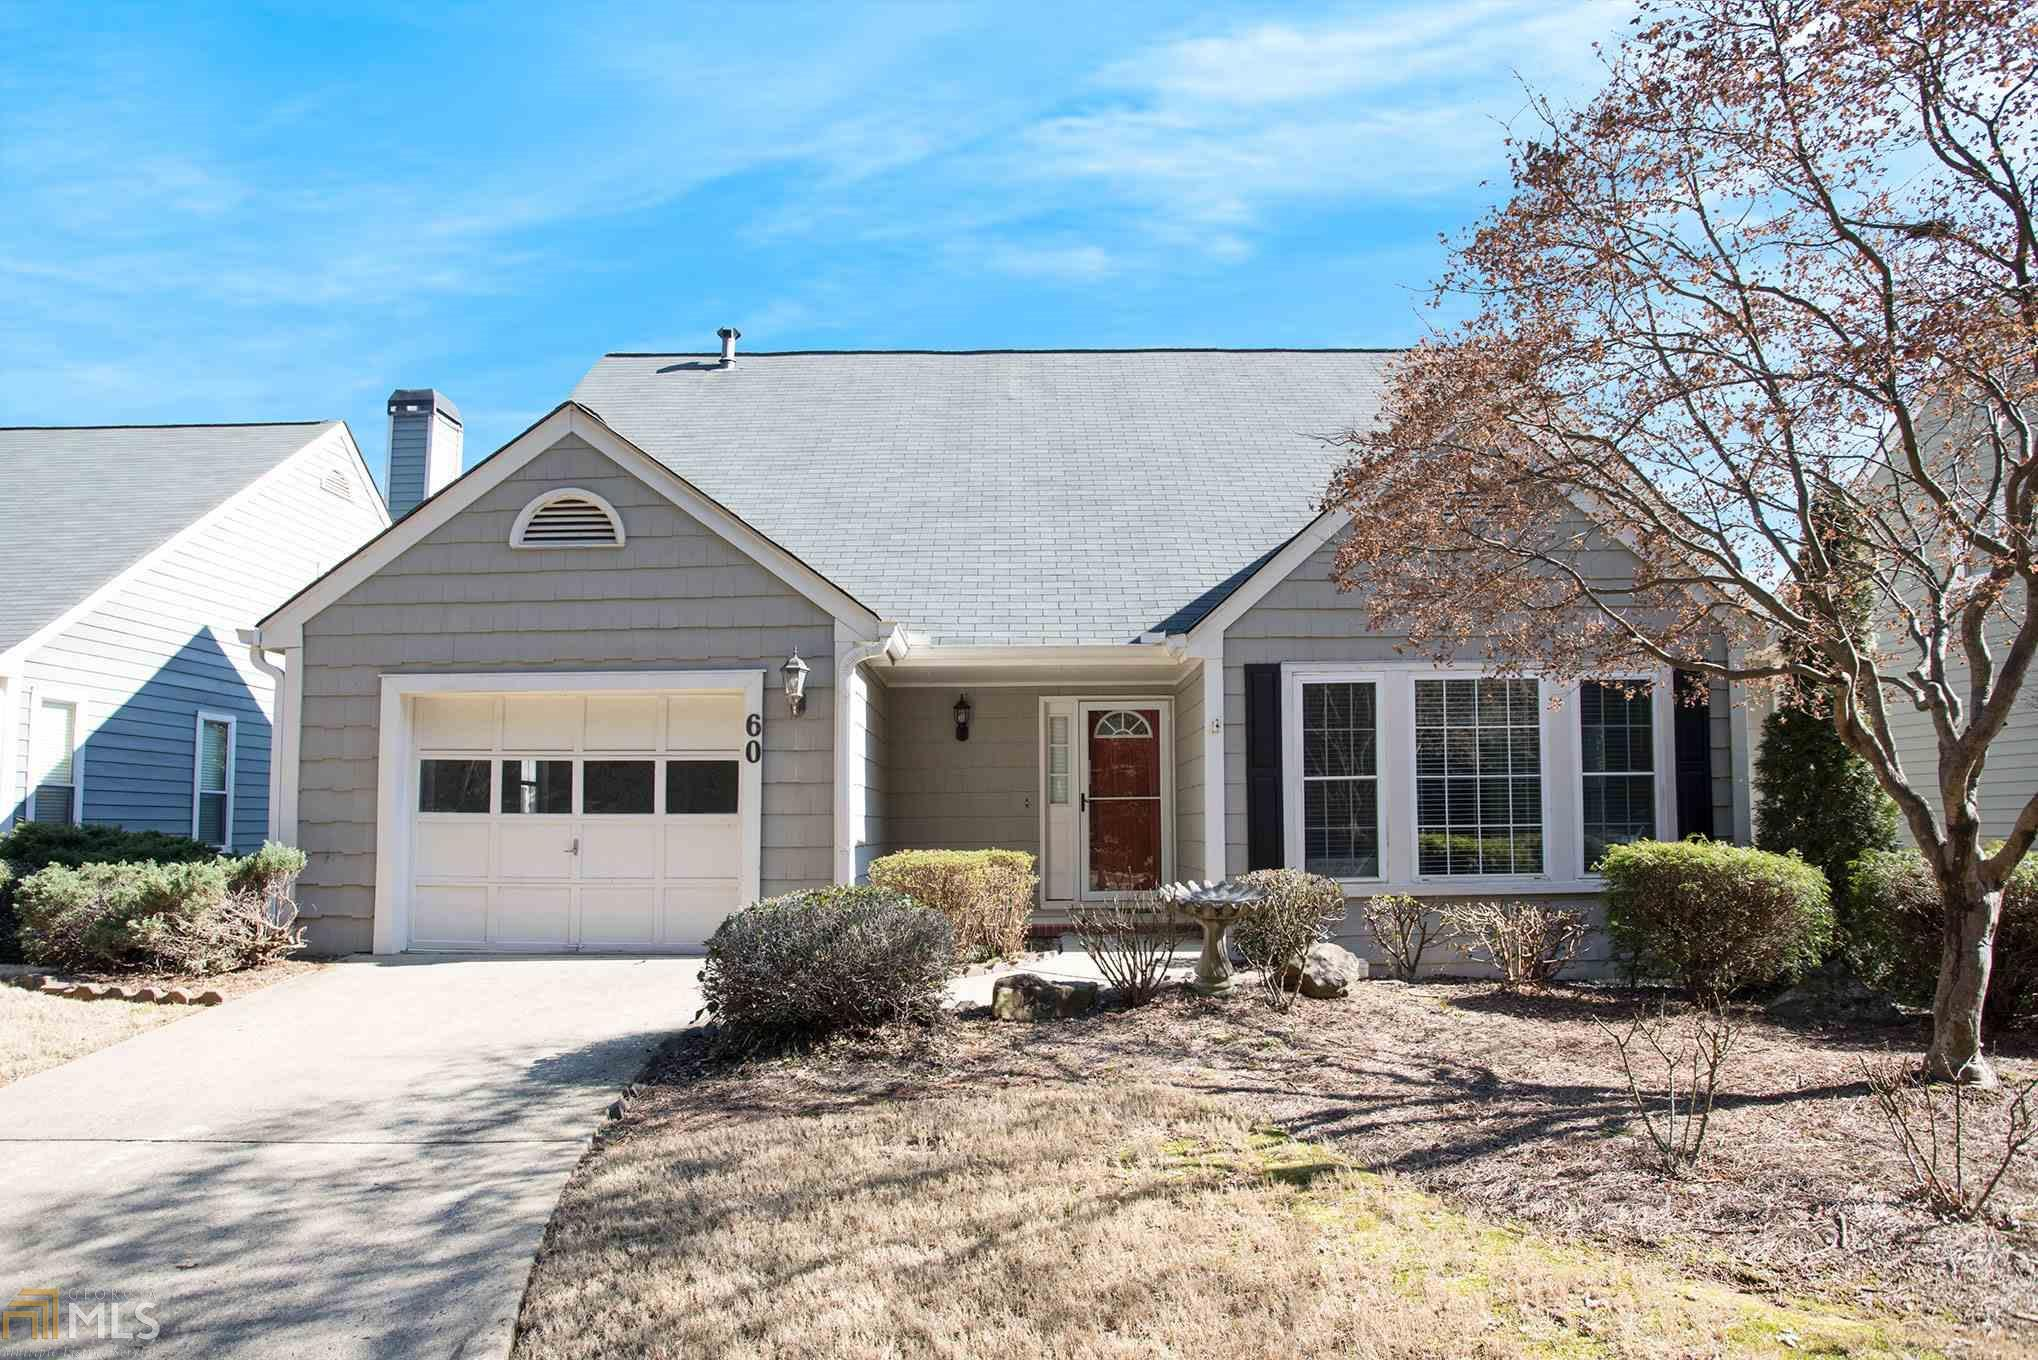 60 Mill Pond Rd, Roswell, GA | MLS# 8401772 | Southern Home